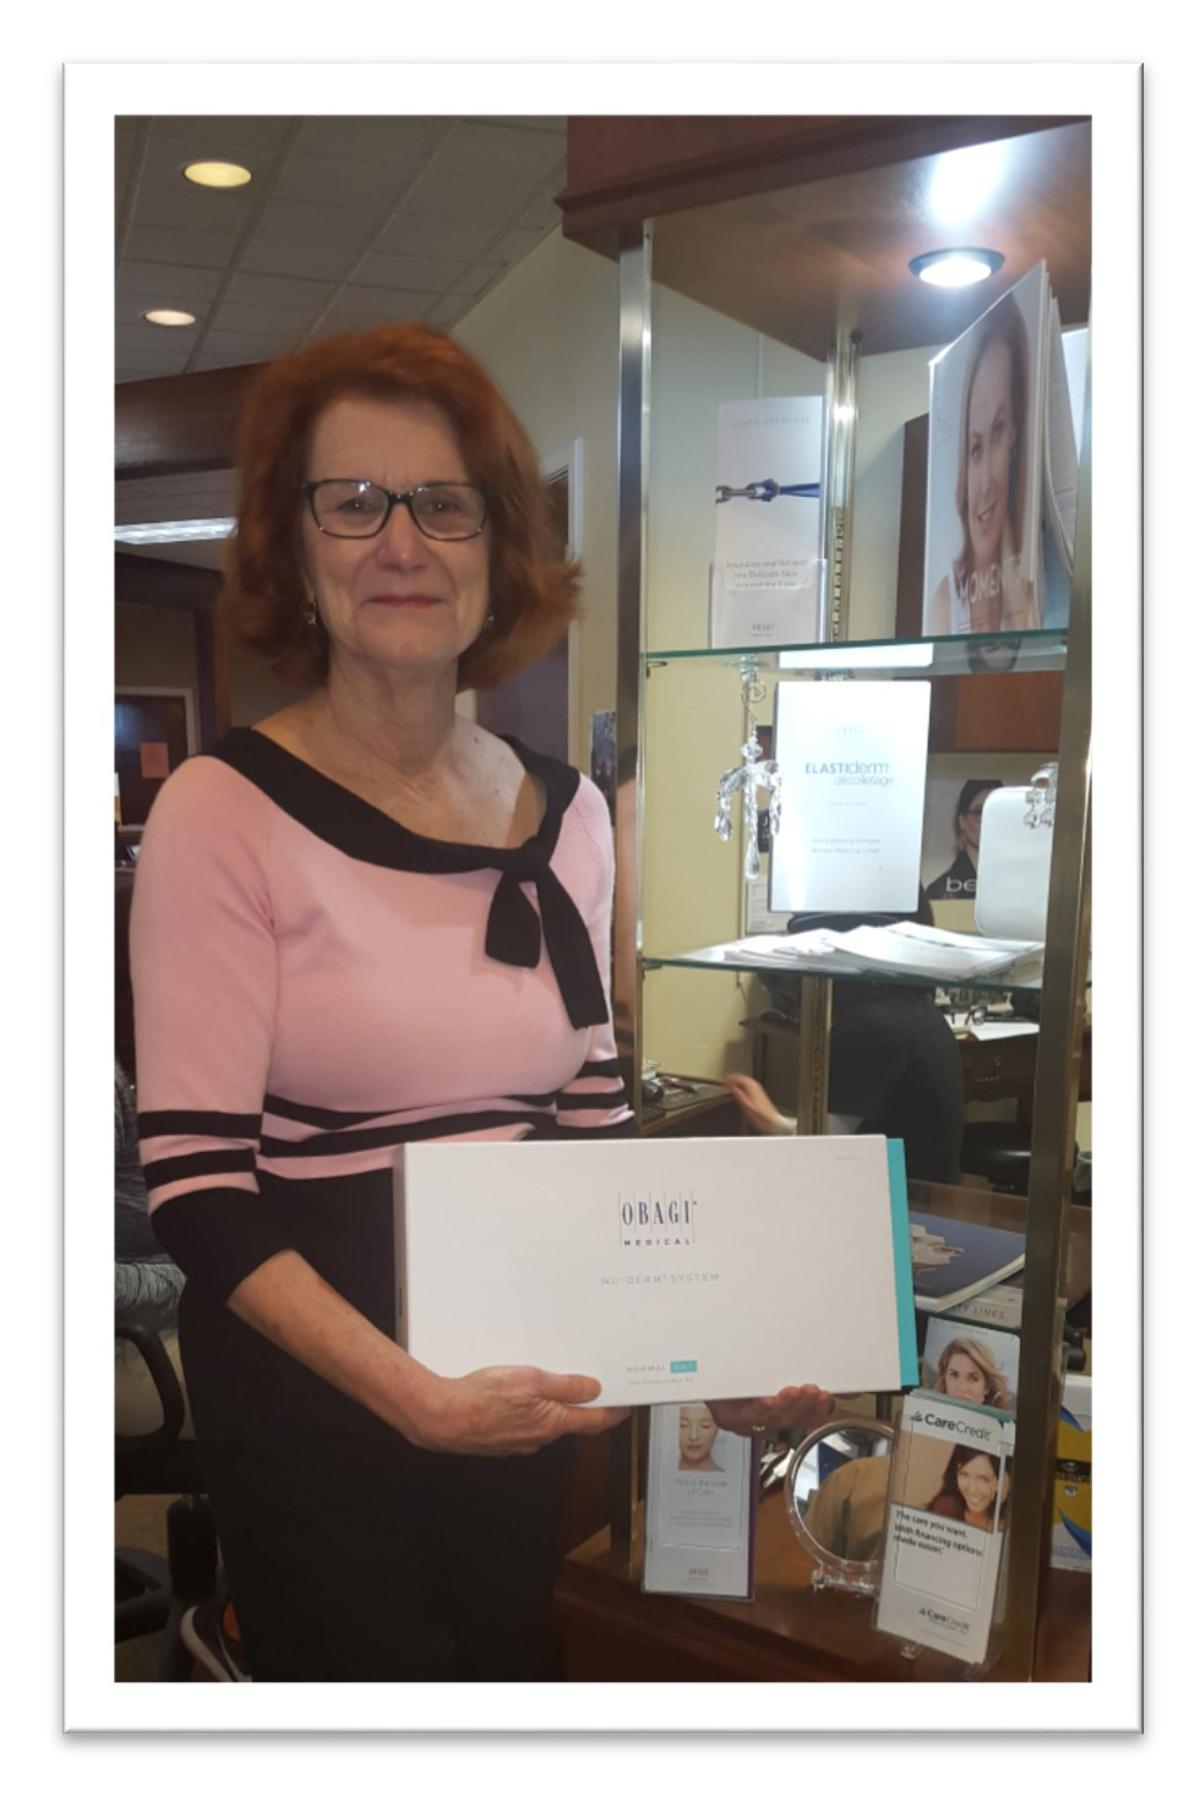 CONGRATULATIONS TO OUR OBAGI GIFT BASKET WINNER!